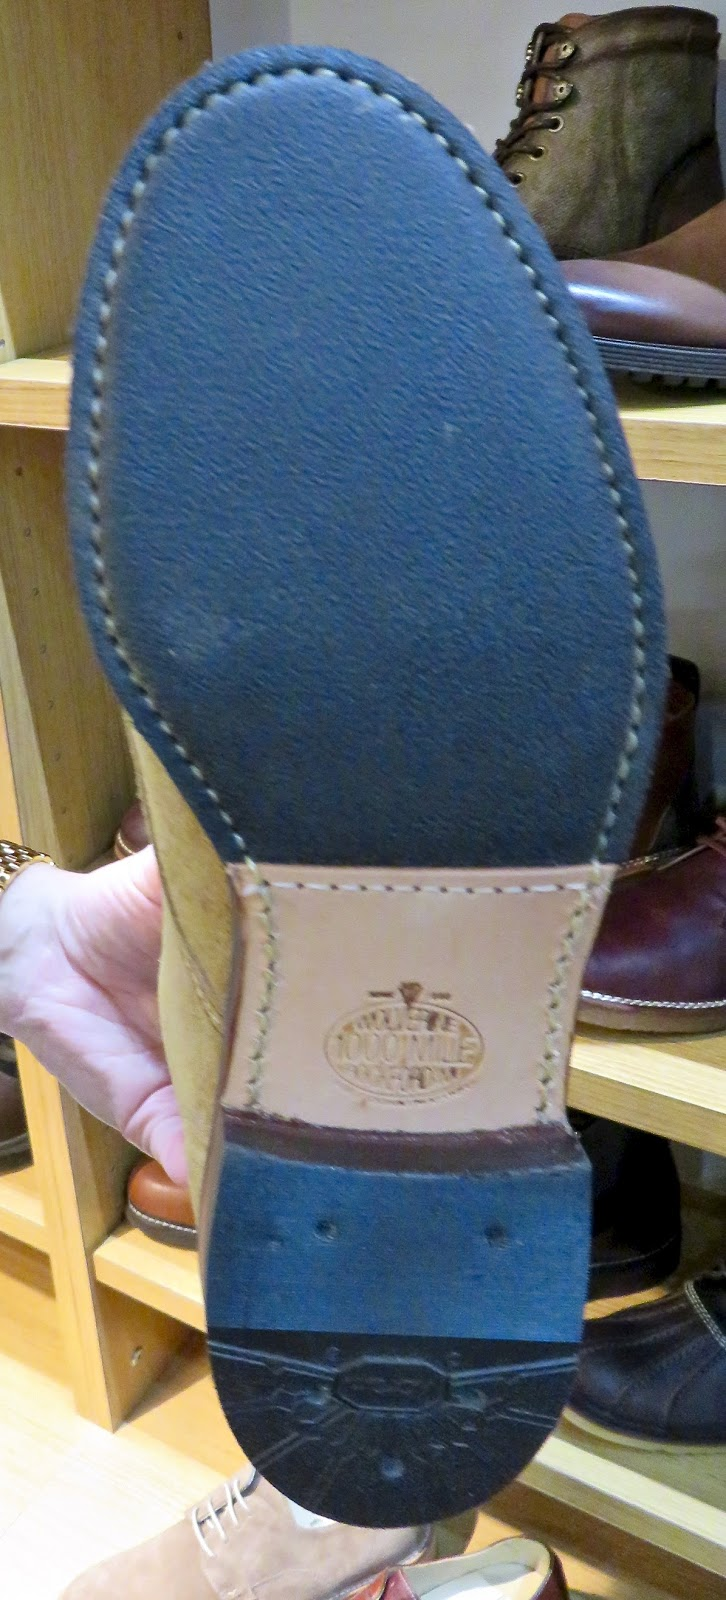 c51eed69768f Vibram 1395 Rubber Leather outsole-handsome too-can see the hand finished  details